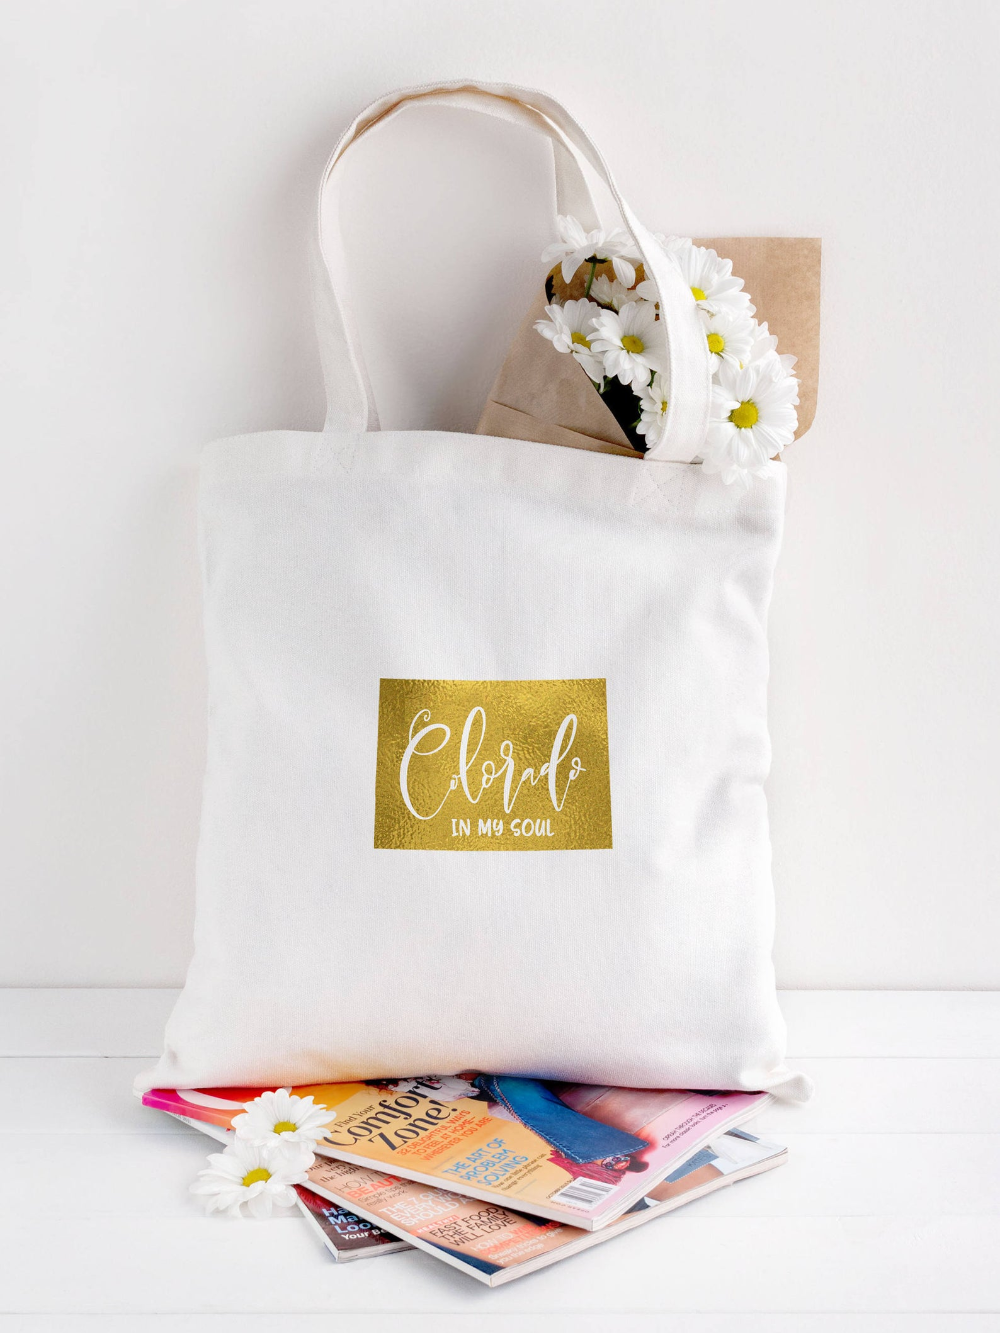 Wedding Favor Ideas for Guests Canvas Tote Bag Guest Favor Flower Tote Bag Party Favors Canvas Tote Bag Welcome Bag